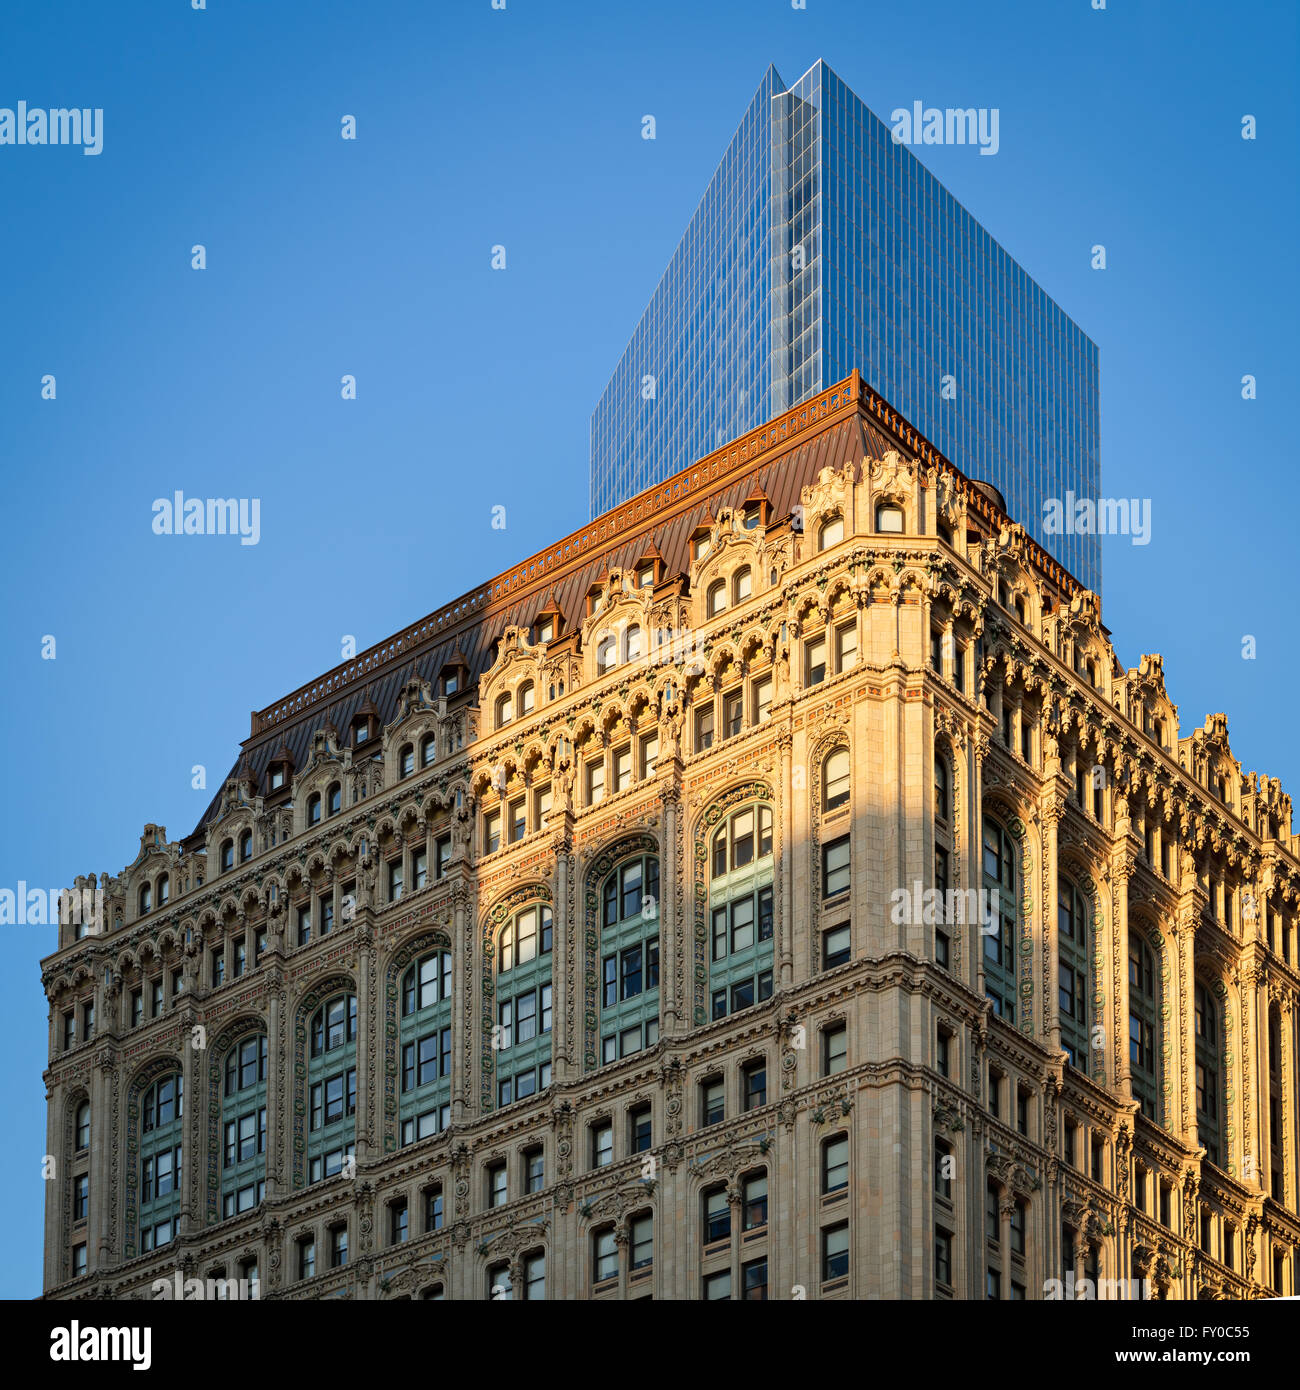 West Street Building at sunset with World Trade Center Tower 4. Manhattan Financial District, New York City - Stock Image